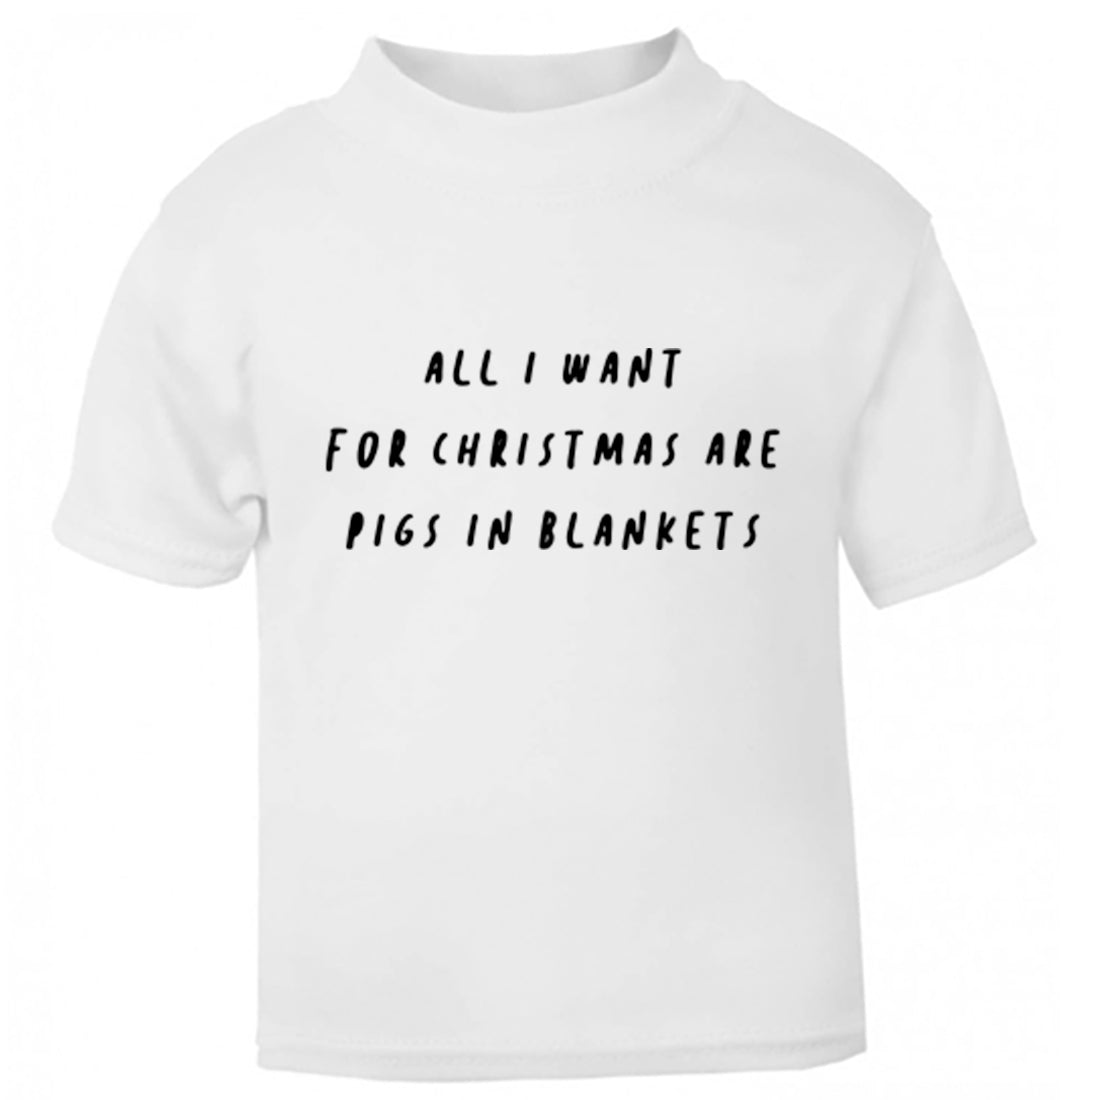 All I Want For Christmas Is Pigs In Blankets Childrens Ages 3/4-12/14 Unisex Fit T-Shirt K2469